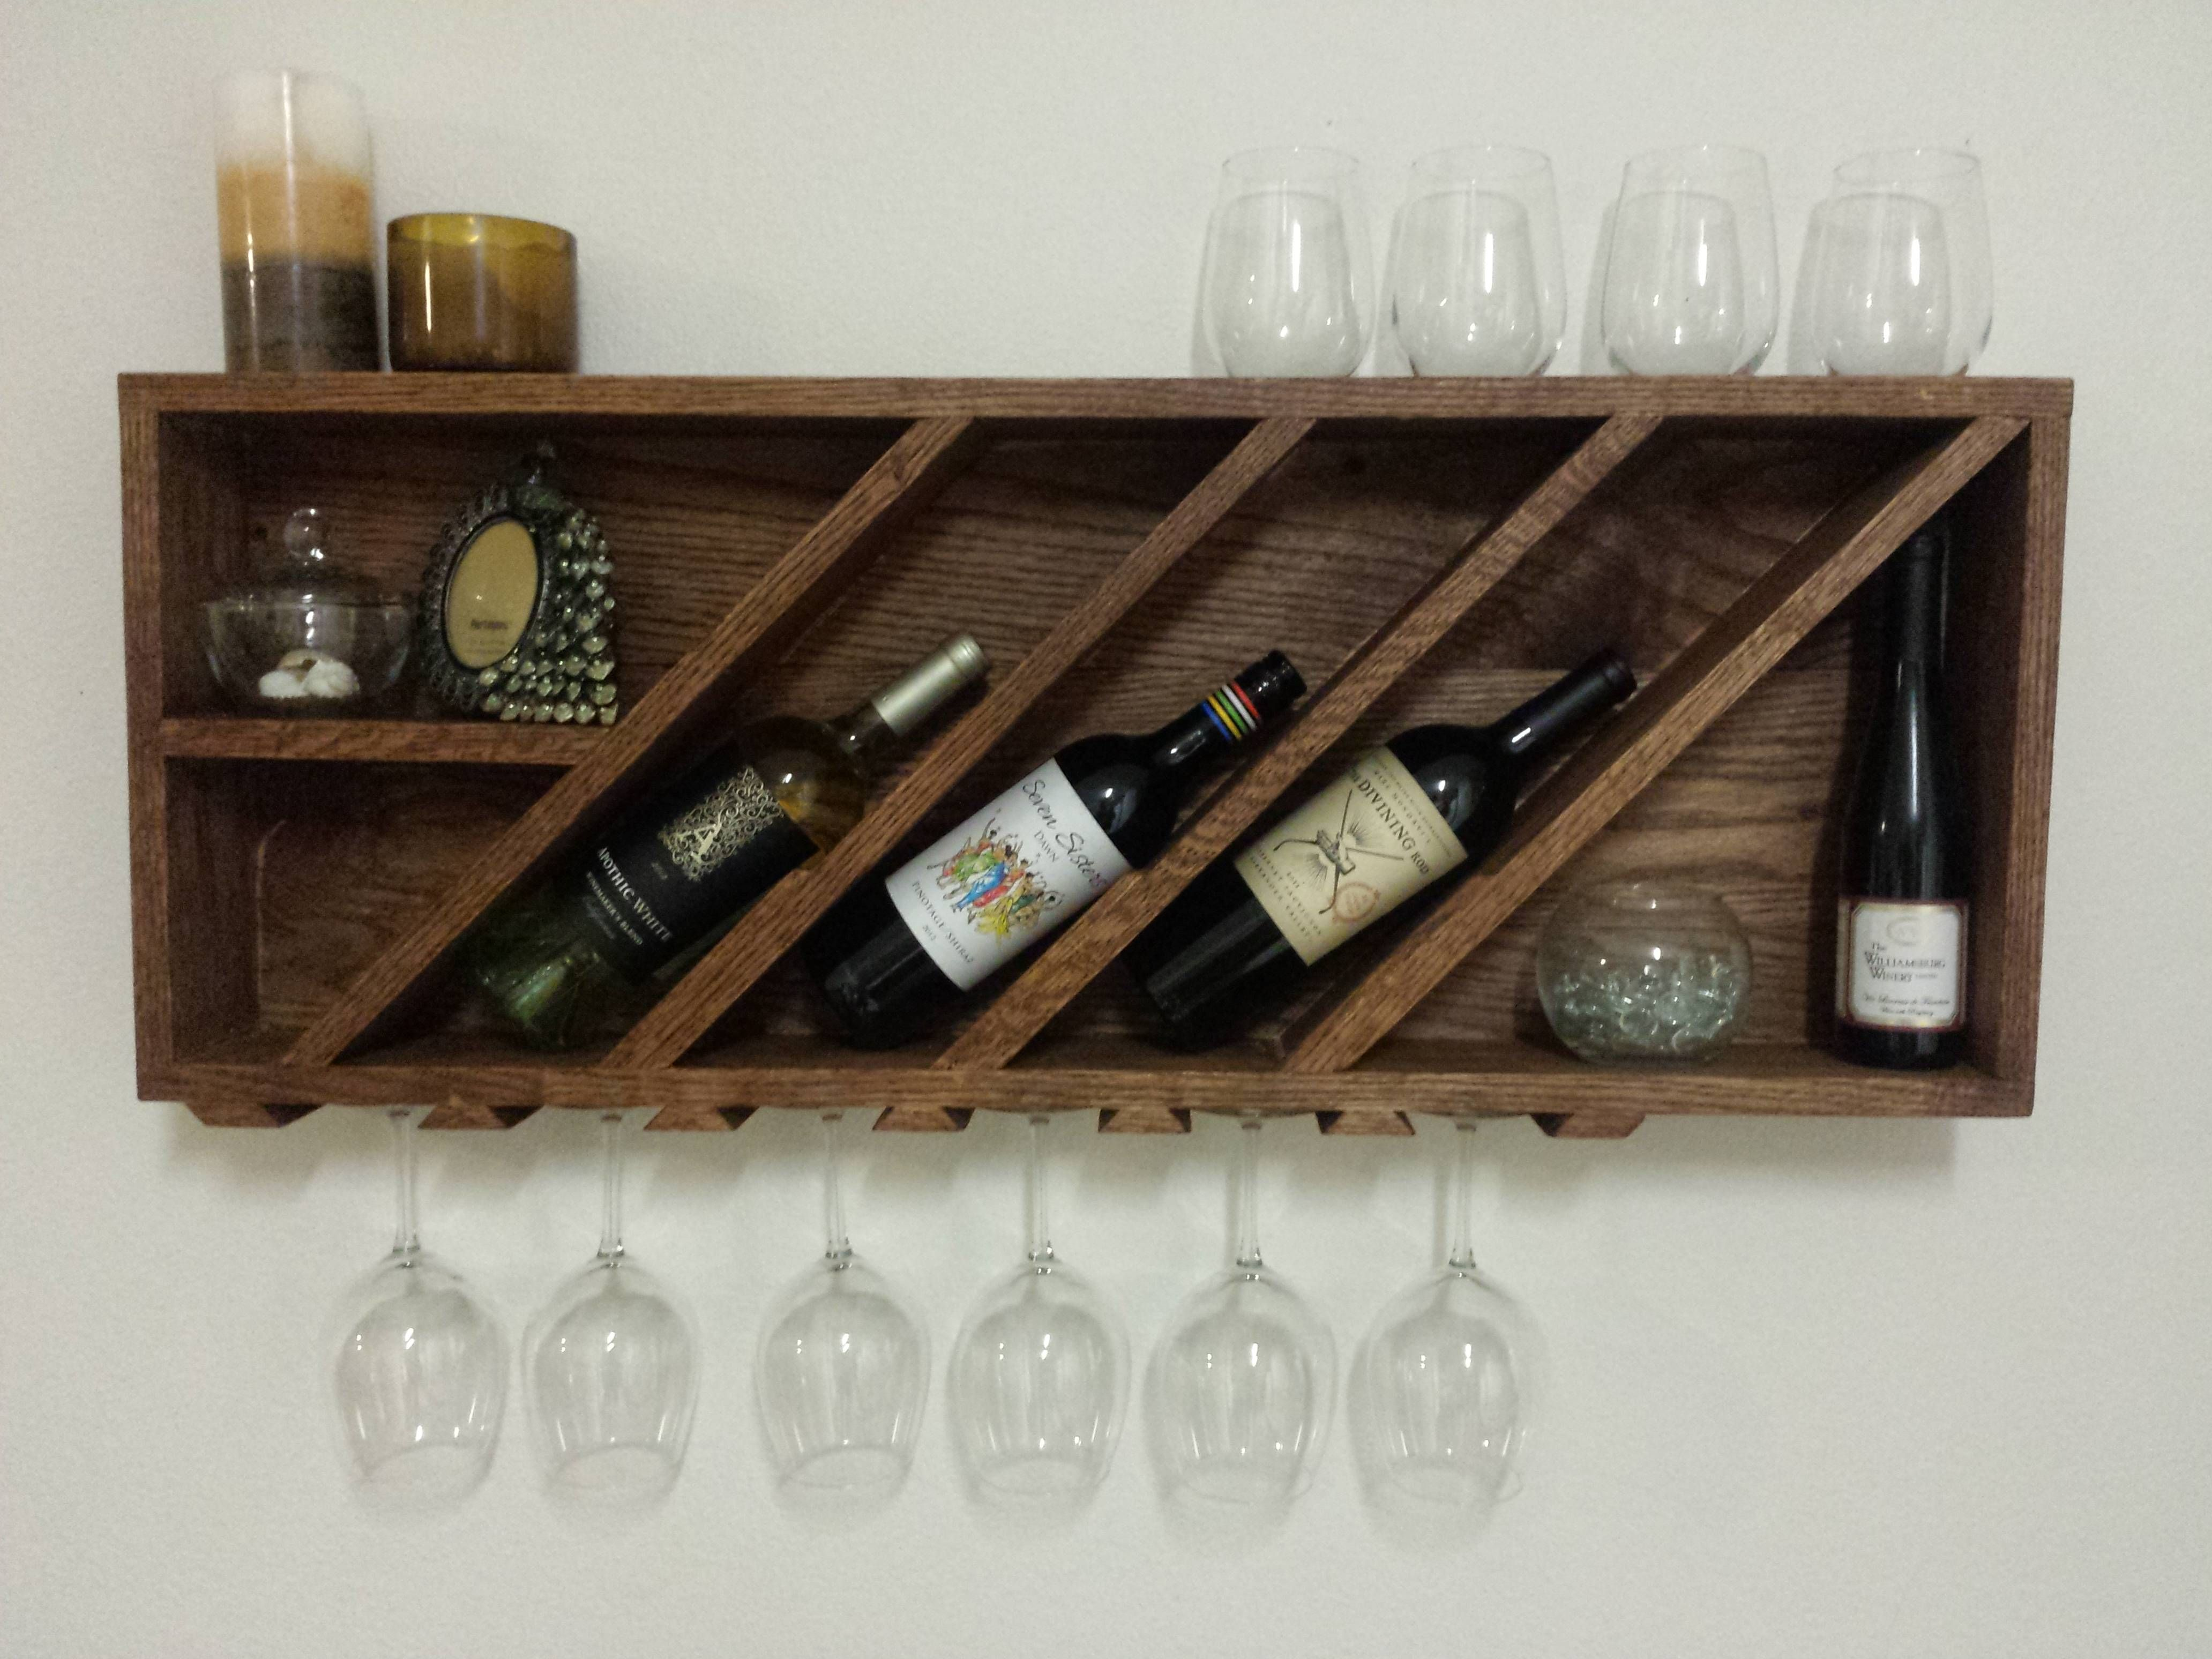 Drag To Resize Or Shift Drag To Move Diy Wine Rack Wood Pallet